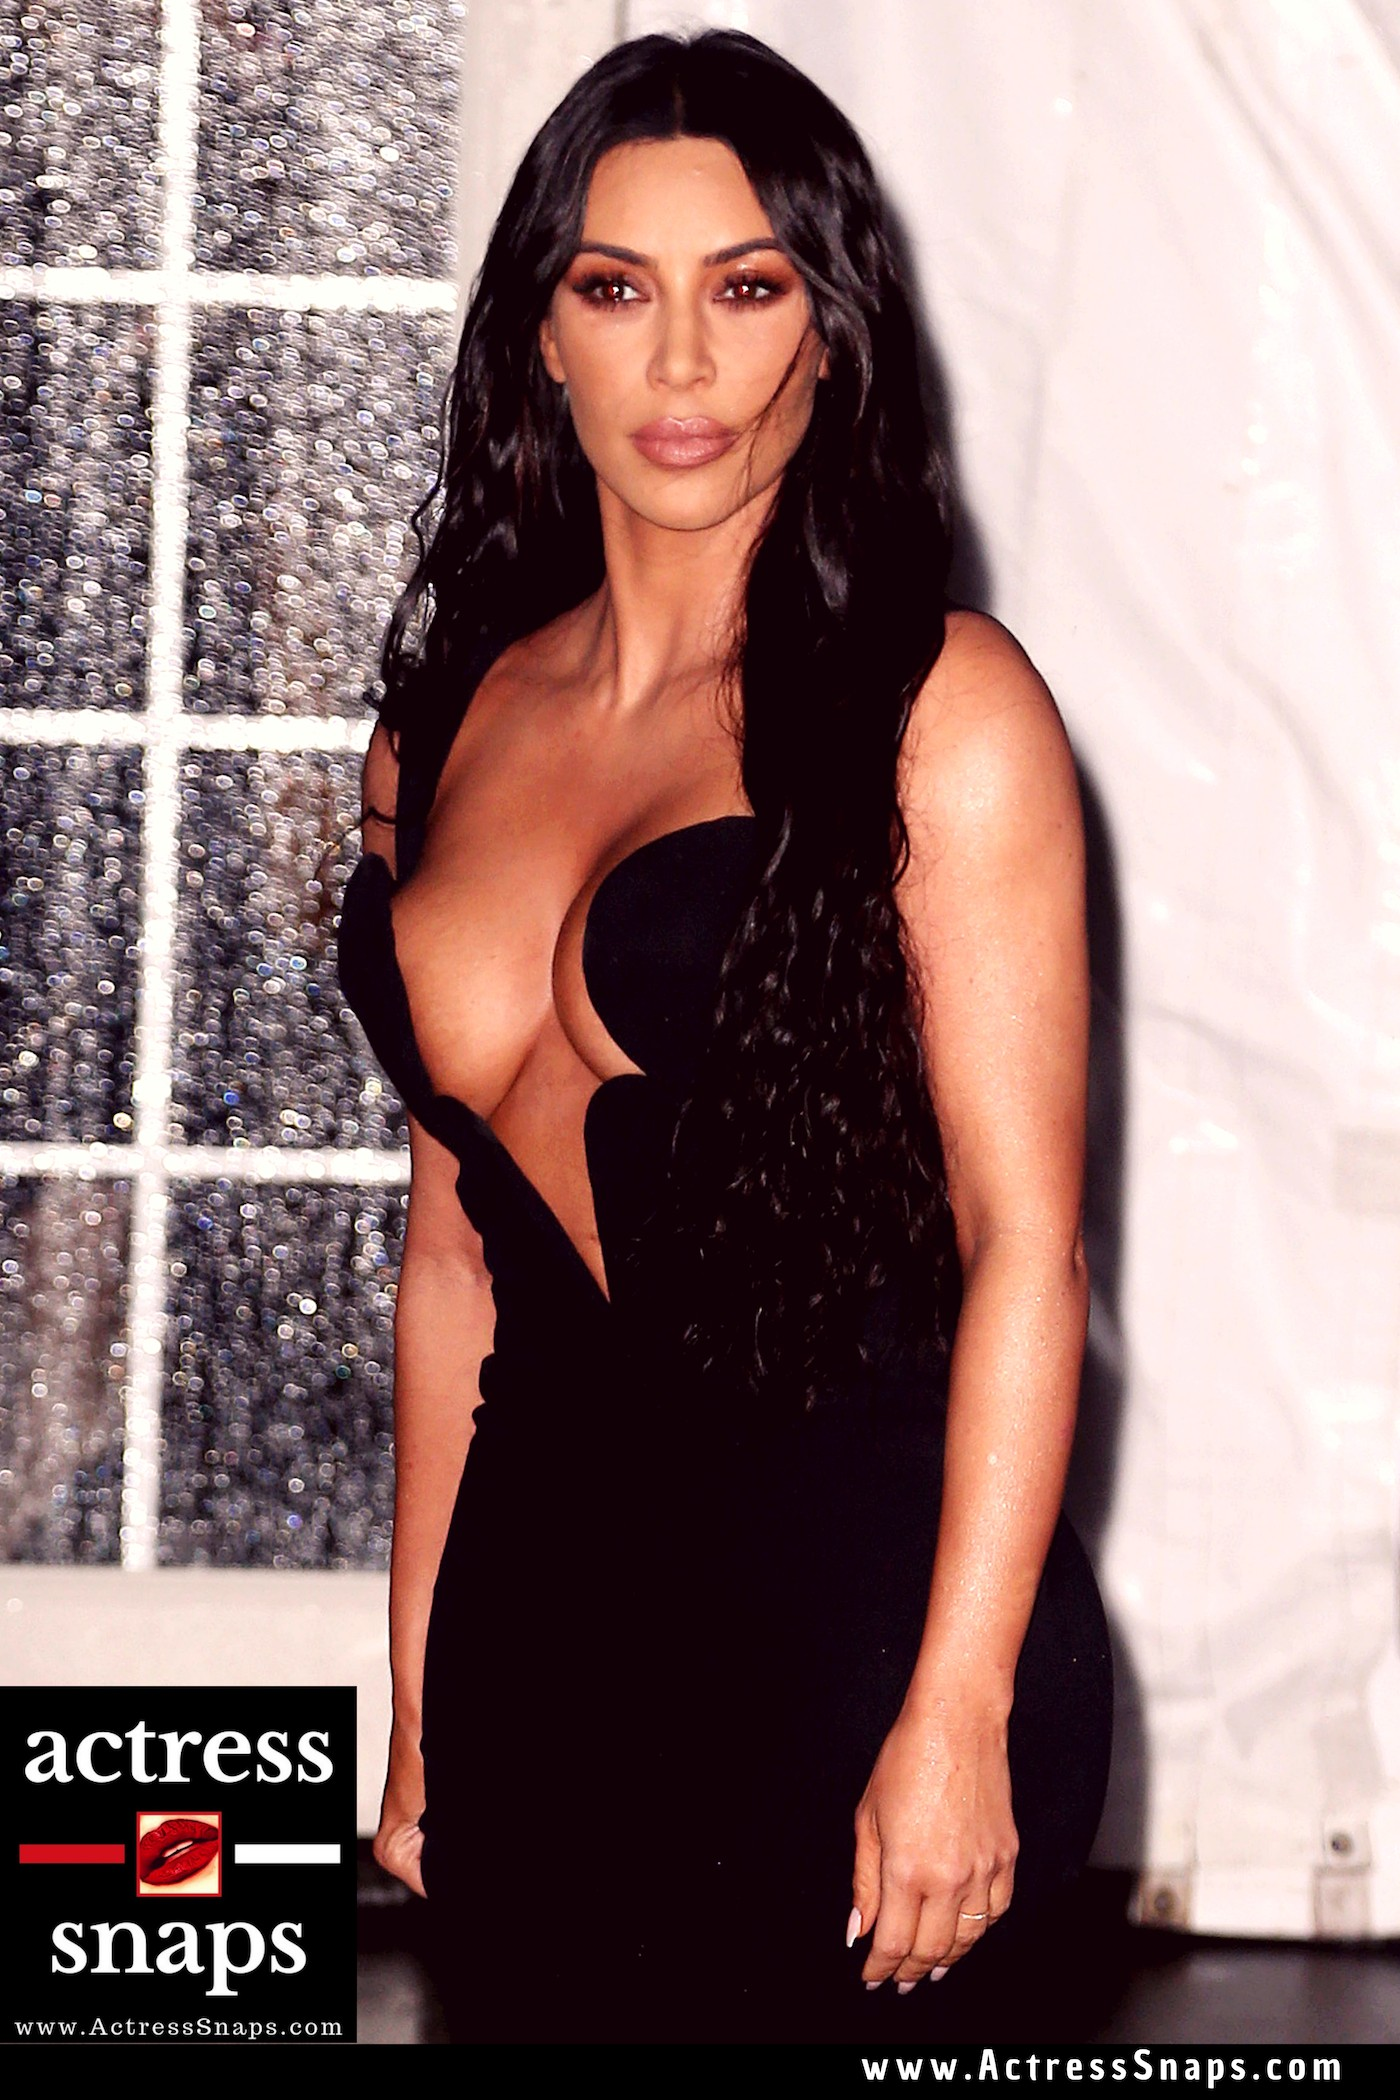 Kim Kardashian at amfAR 2019 Gala - Sexy Actress Pictures | Hot Actress Pictures - ActressSnaps.com